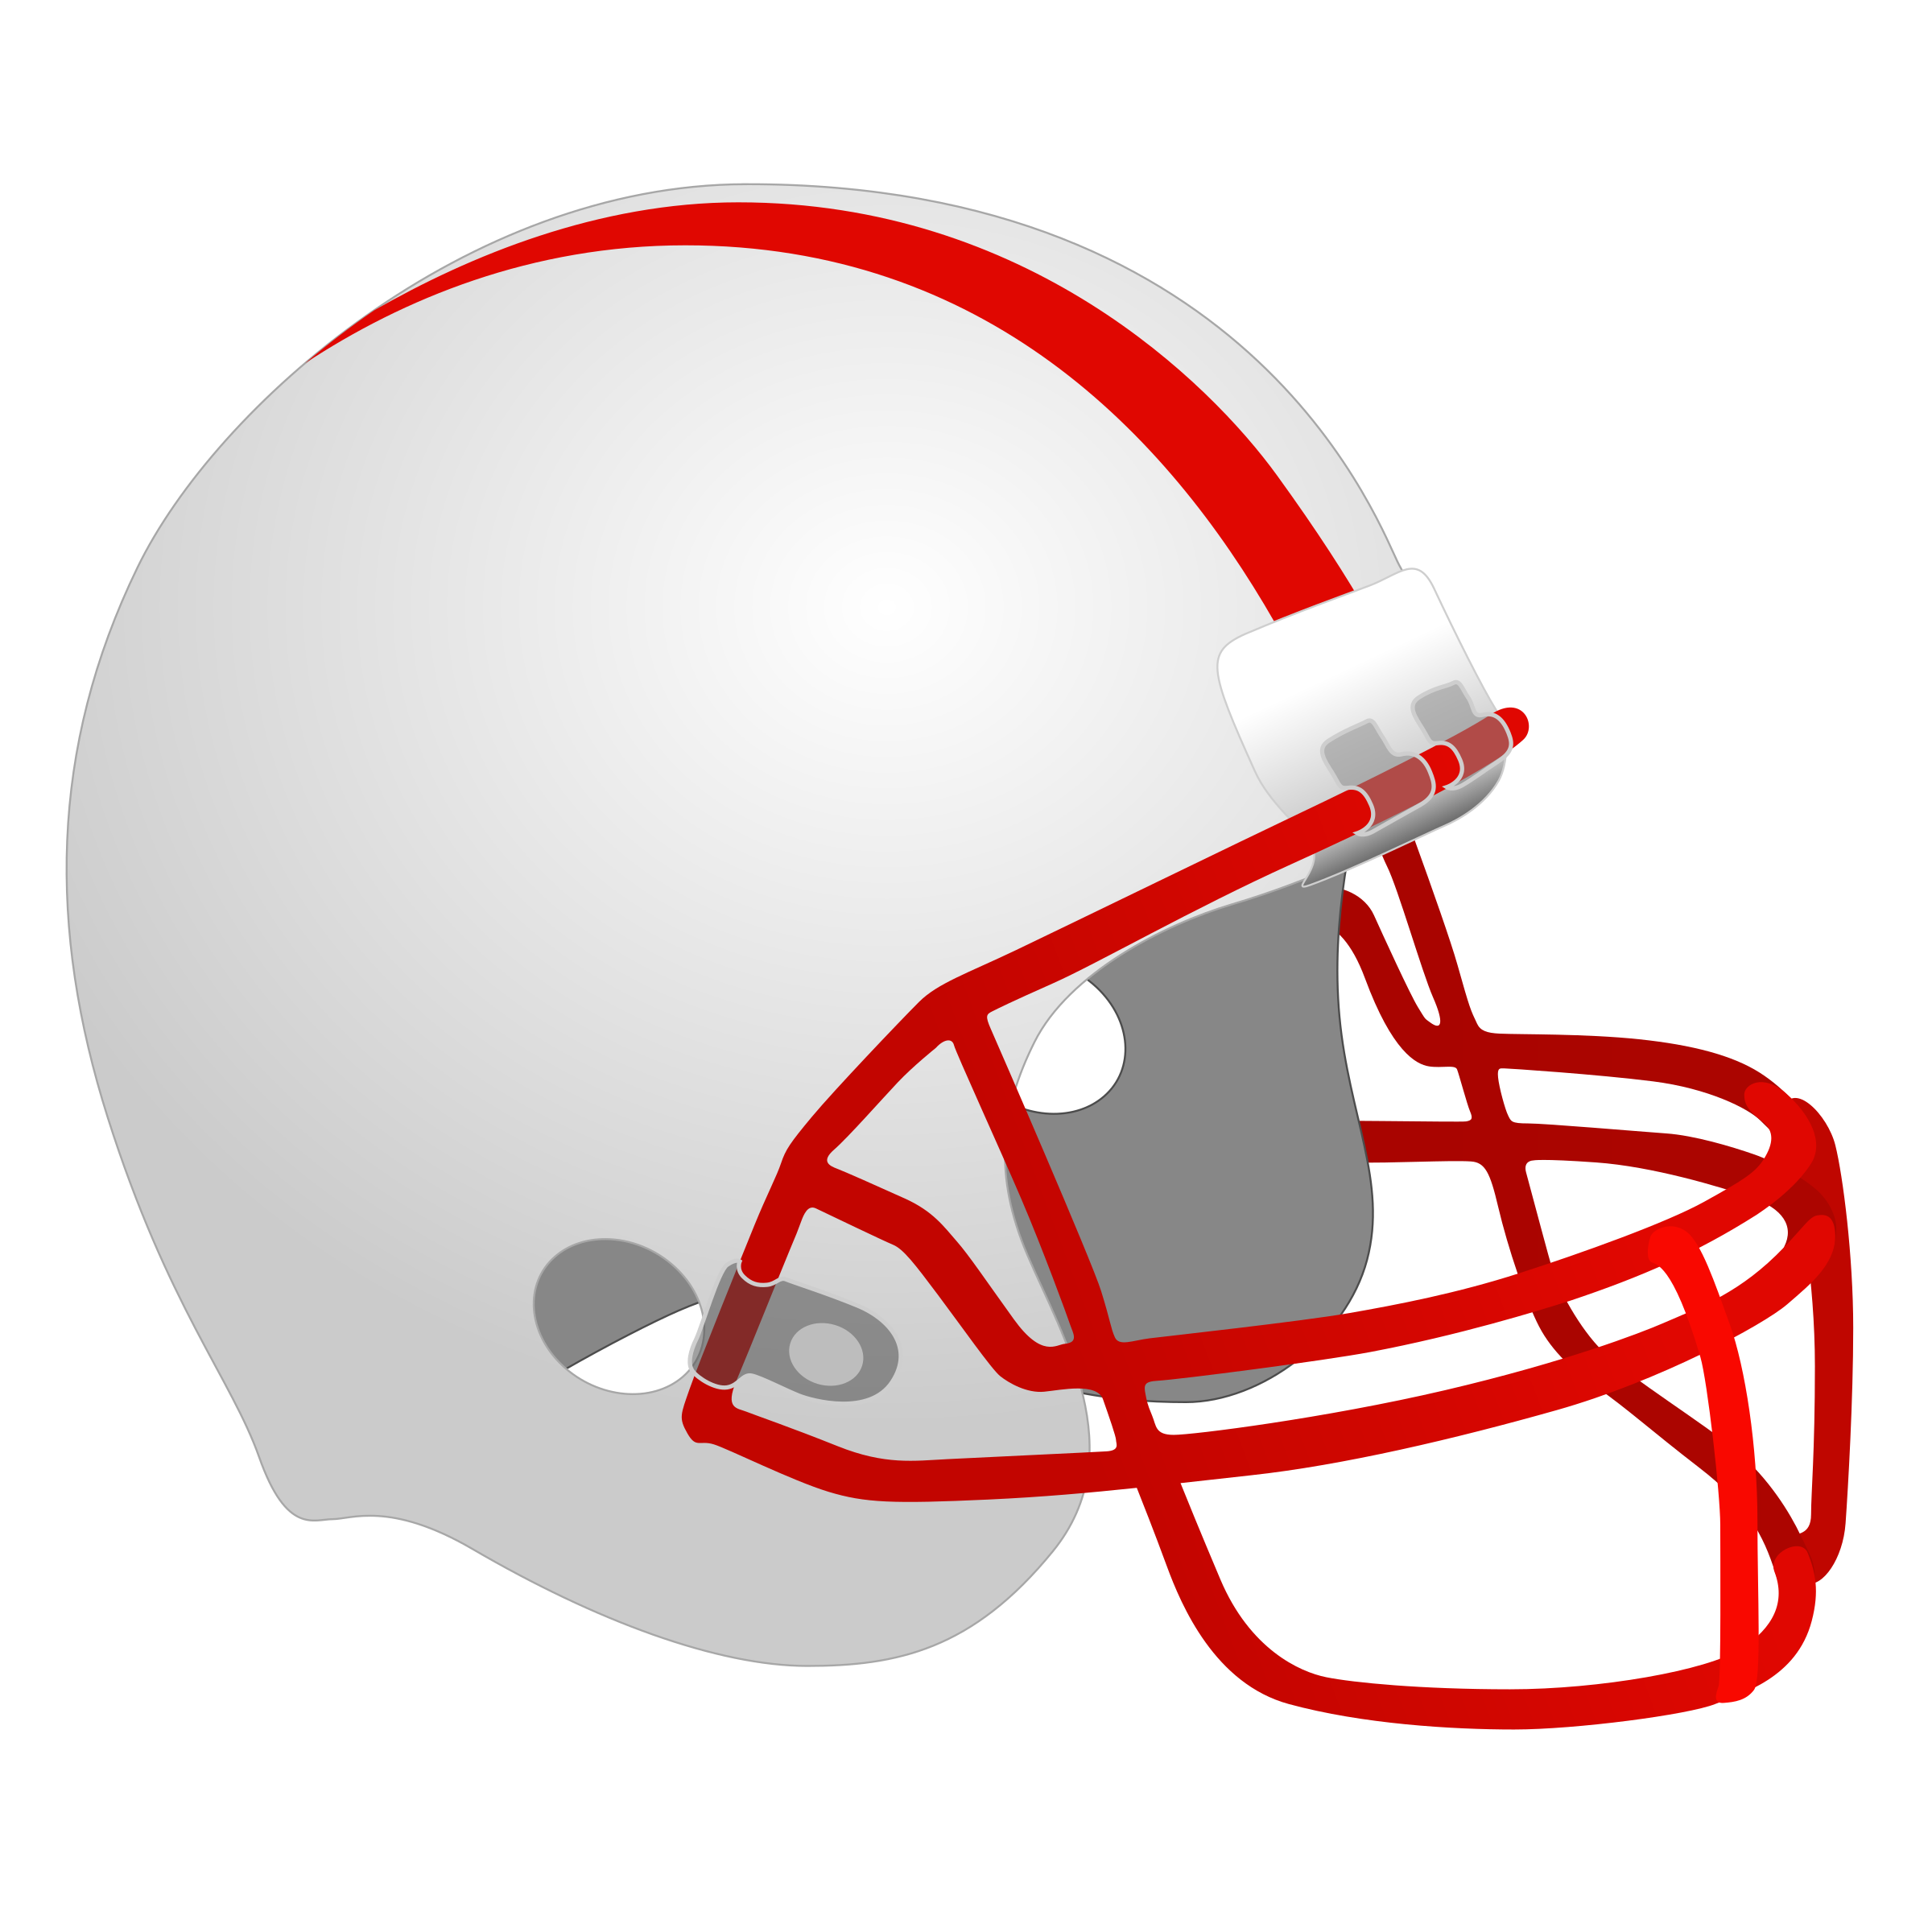 Football helmet clipart abstract. Icons png free and